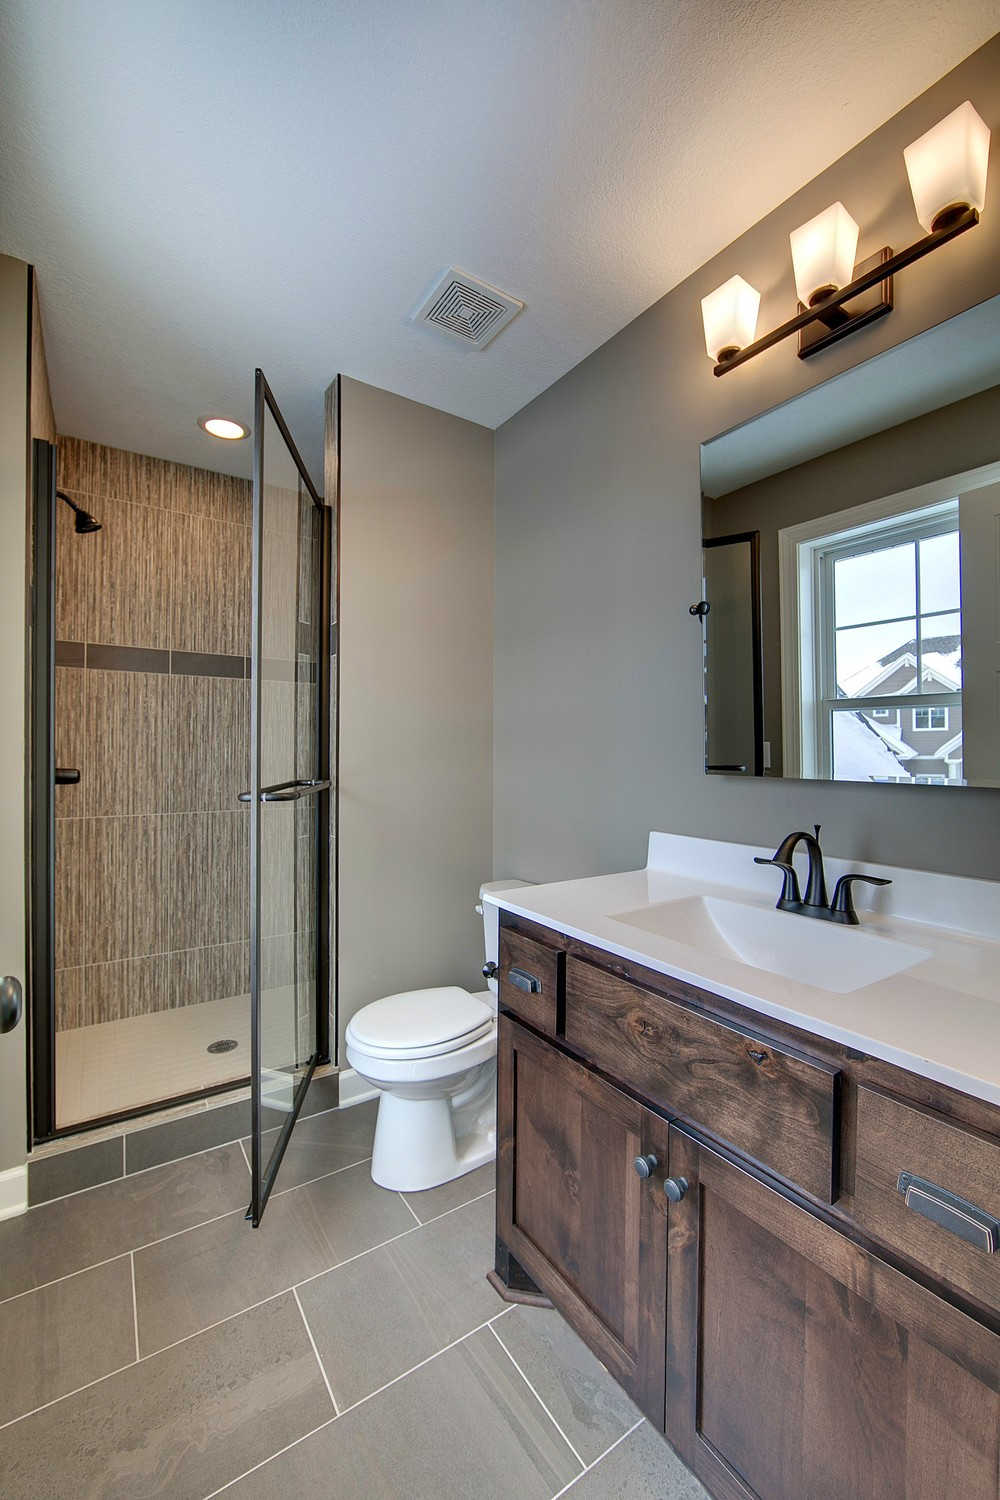 4489-Bluebell_Bath Junior Suite.jpg